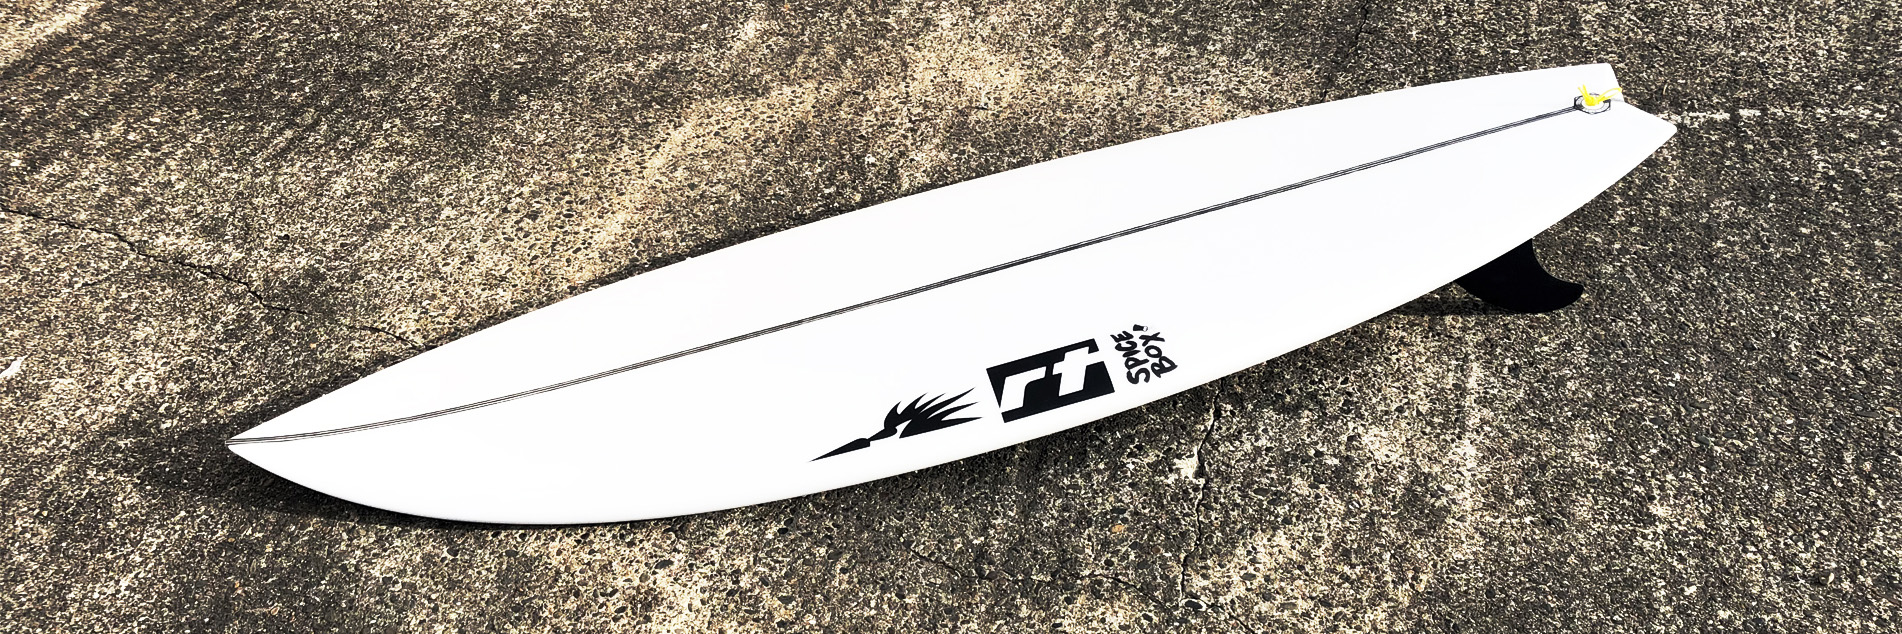 RTSurfboards_spicebox-04b